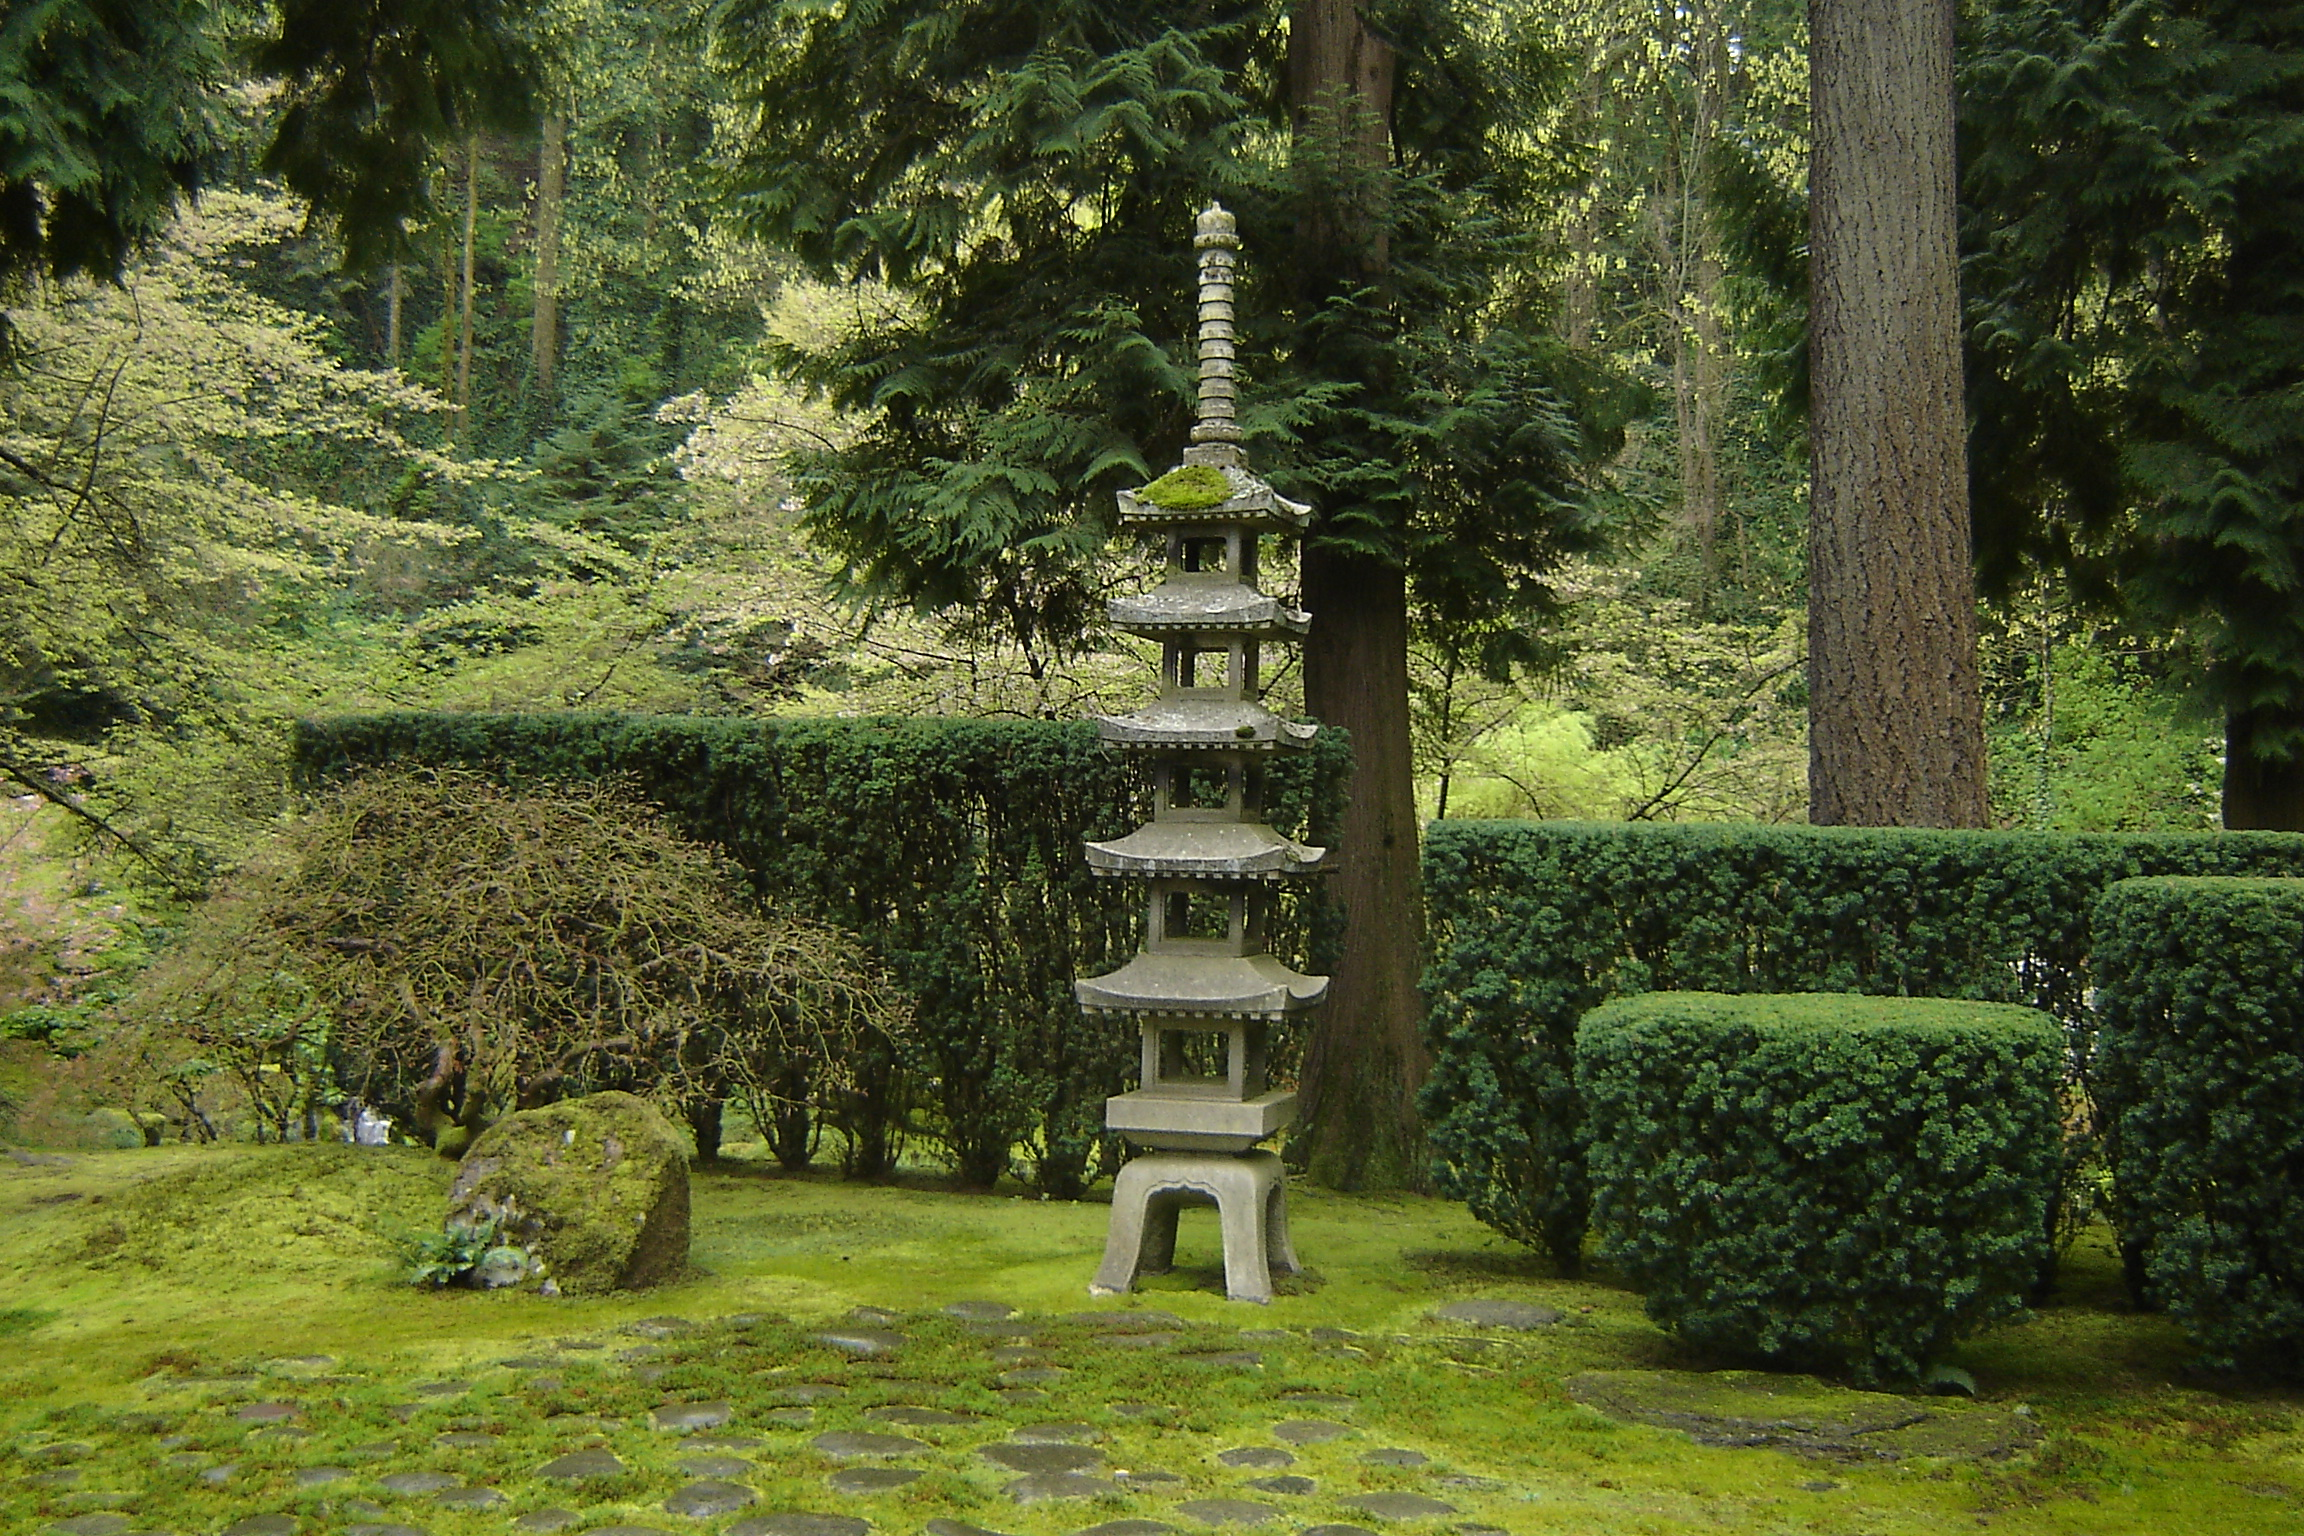 Color photo of a tall Japanese pagoda